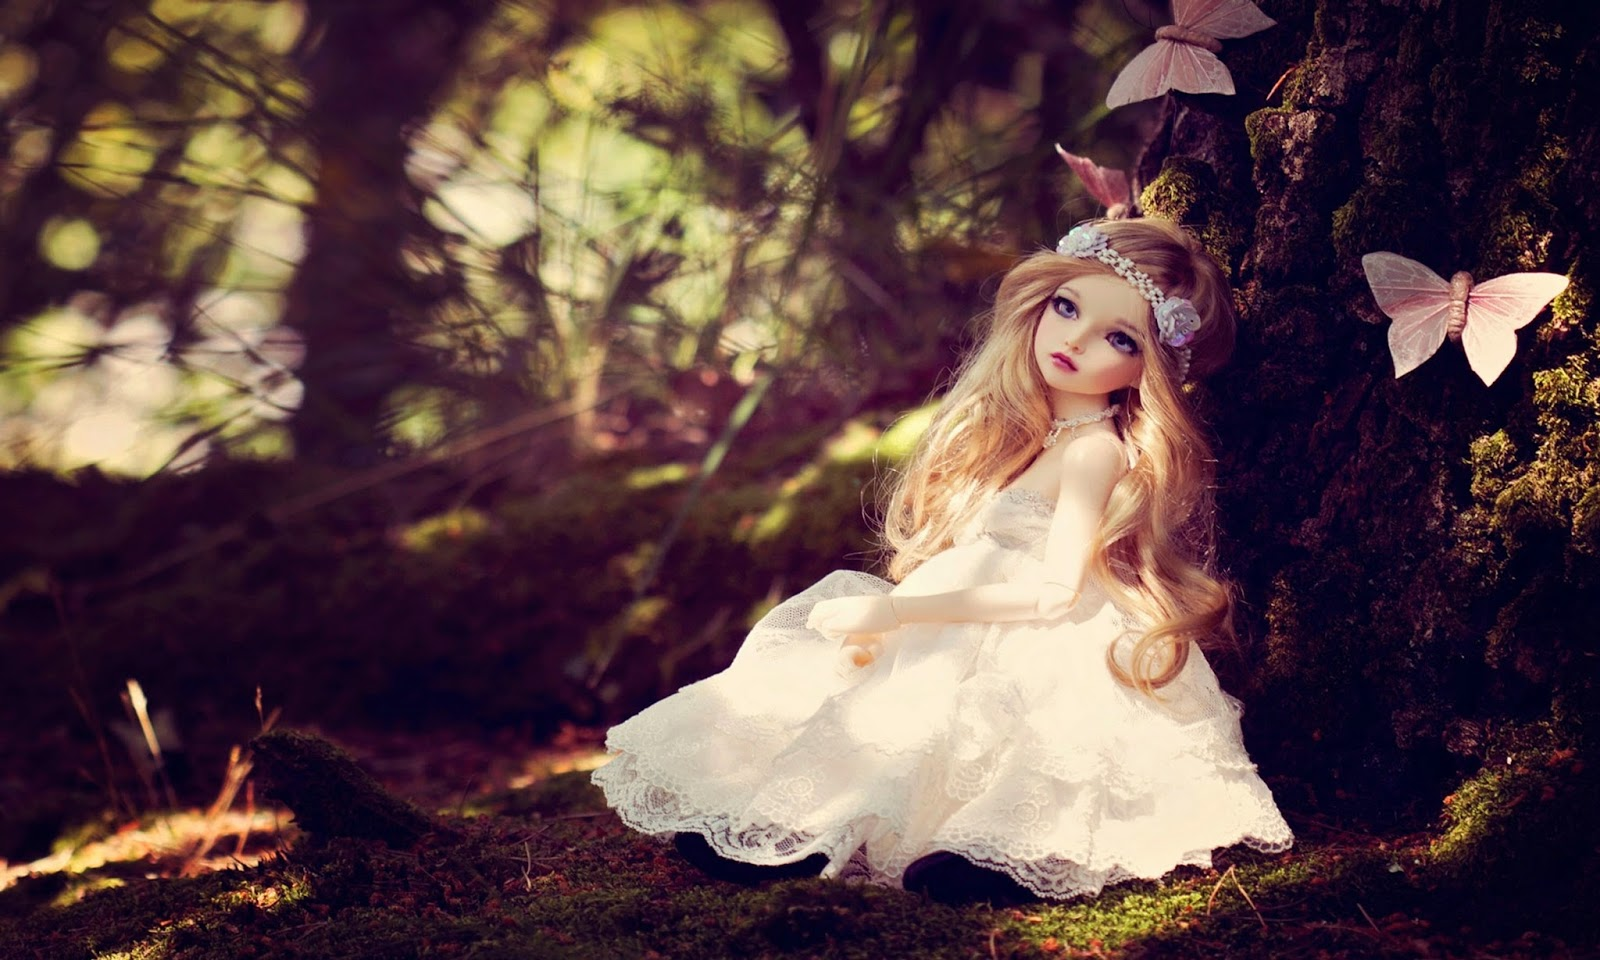 Cute Dolls Wallpapers With Quotes Cute Dolls Hd Walllpapers Hd Wallpapers High Definition